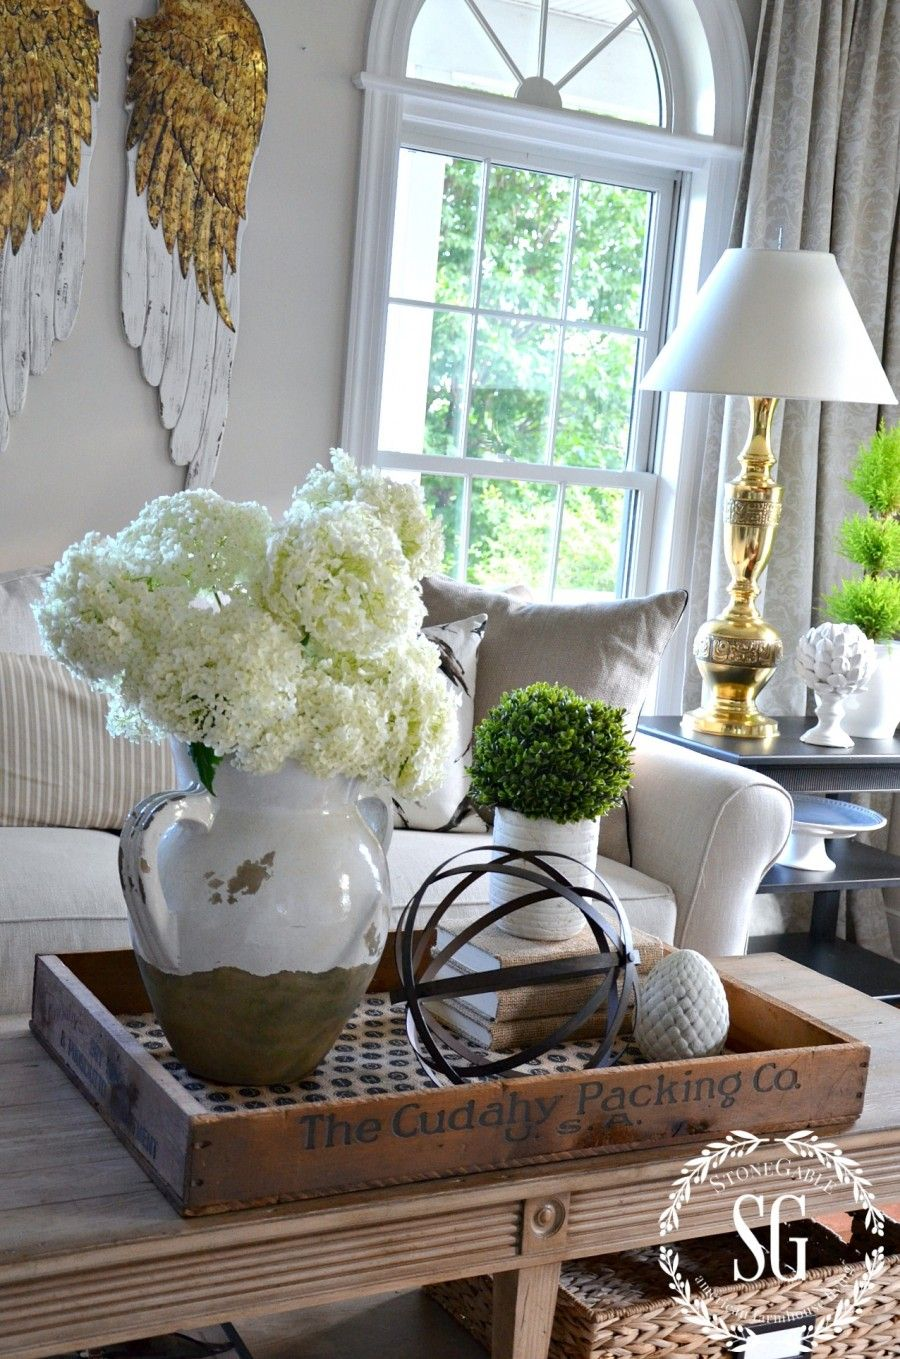 I love the idea of putting the coffee table decor on a wooden tray Looks great and makes it easy to move out of the way when needed